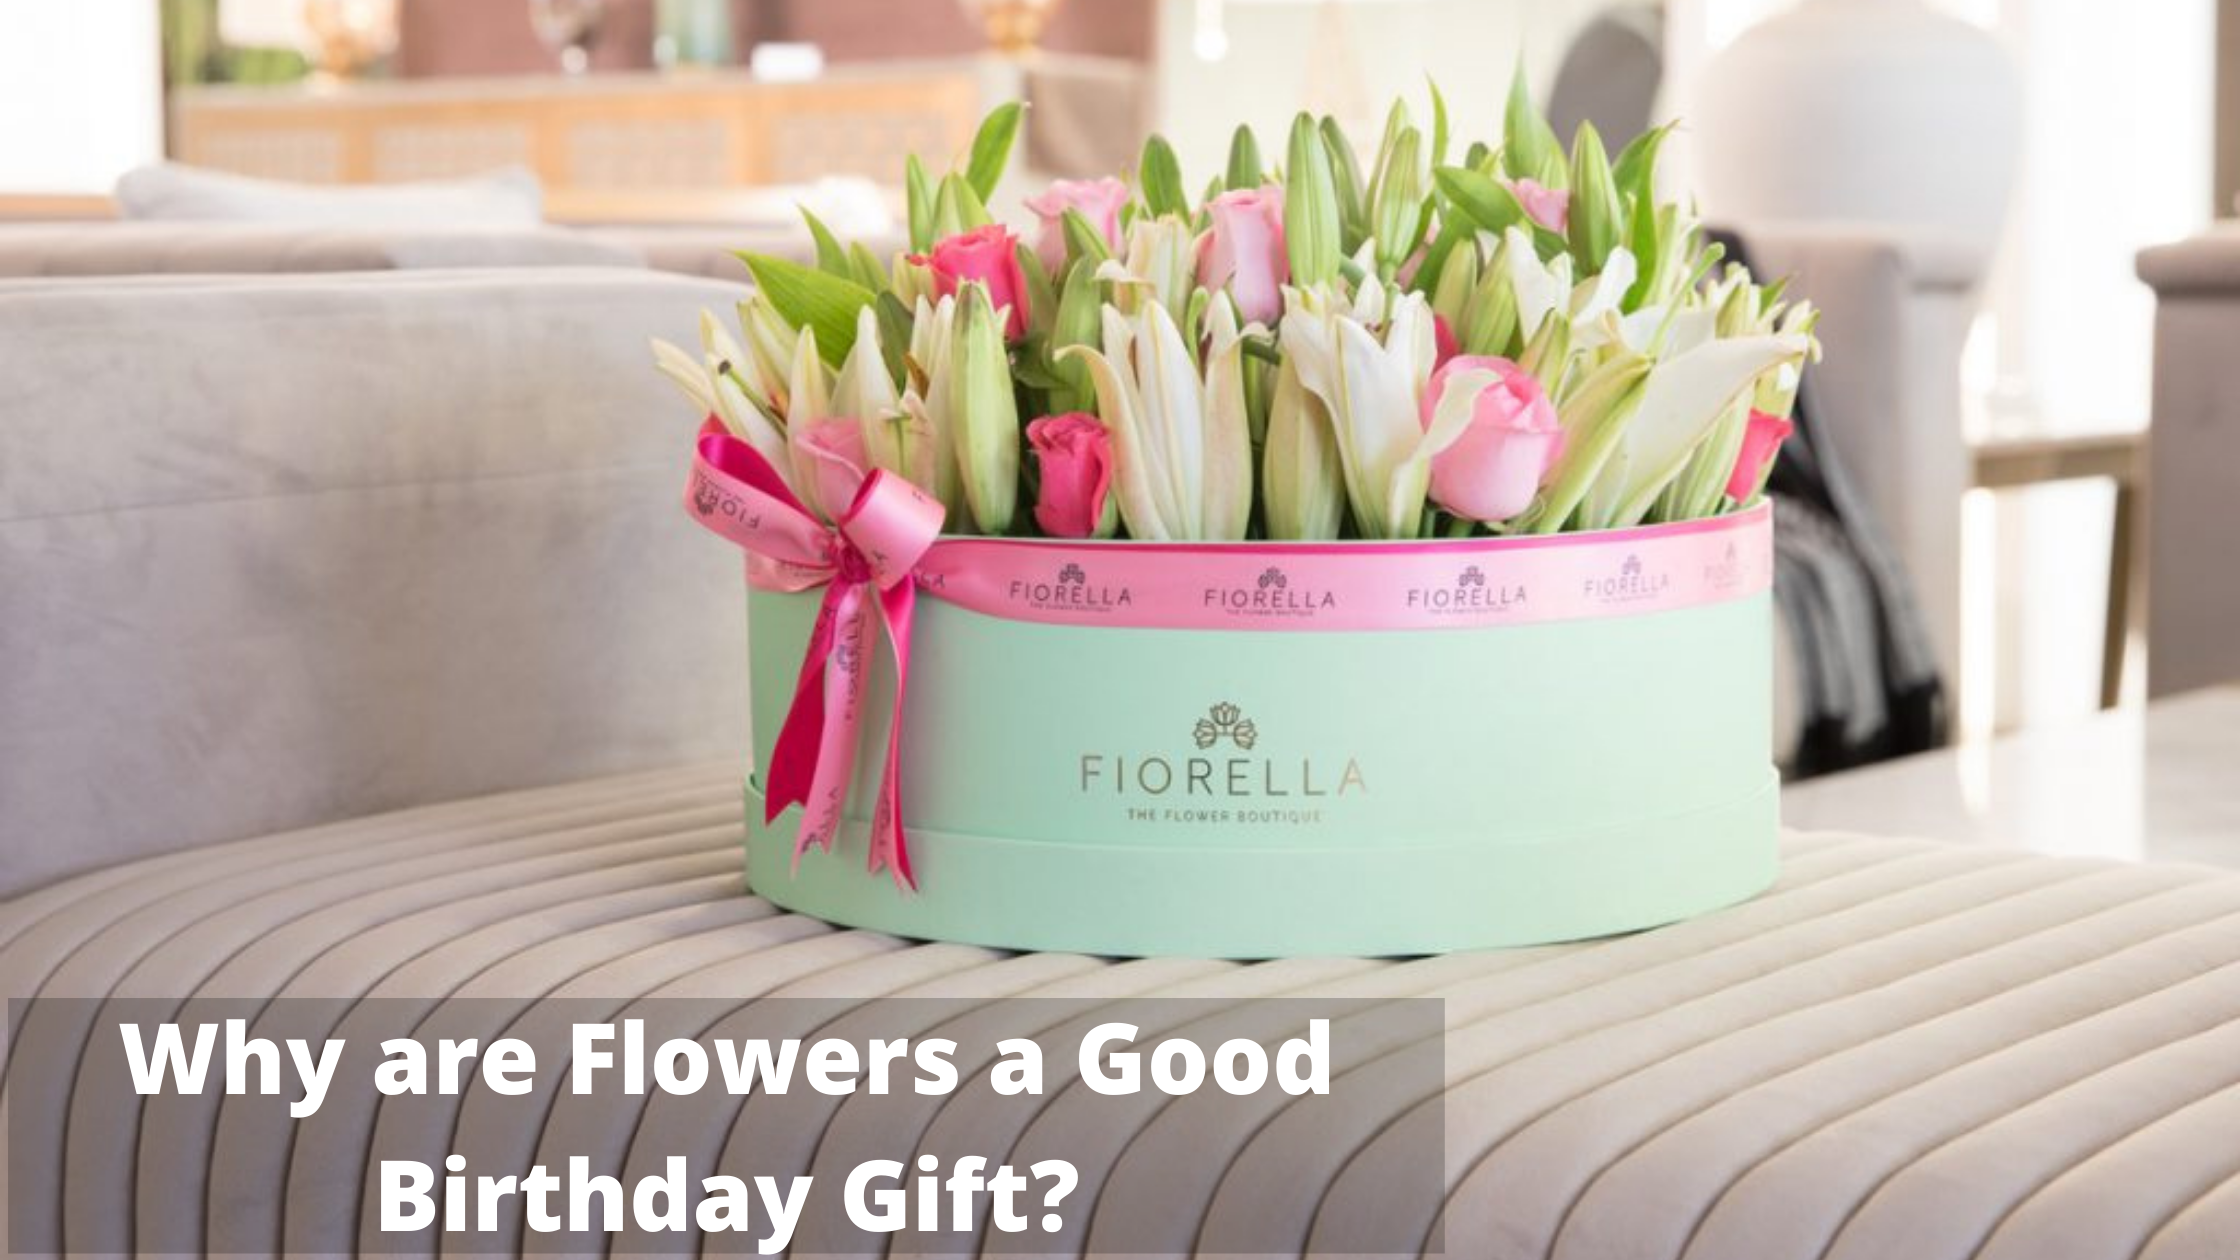 Why are Flowers a Good Birthday Gift